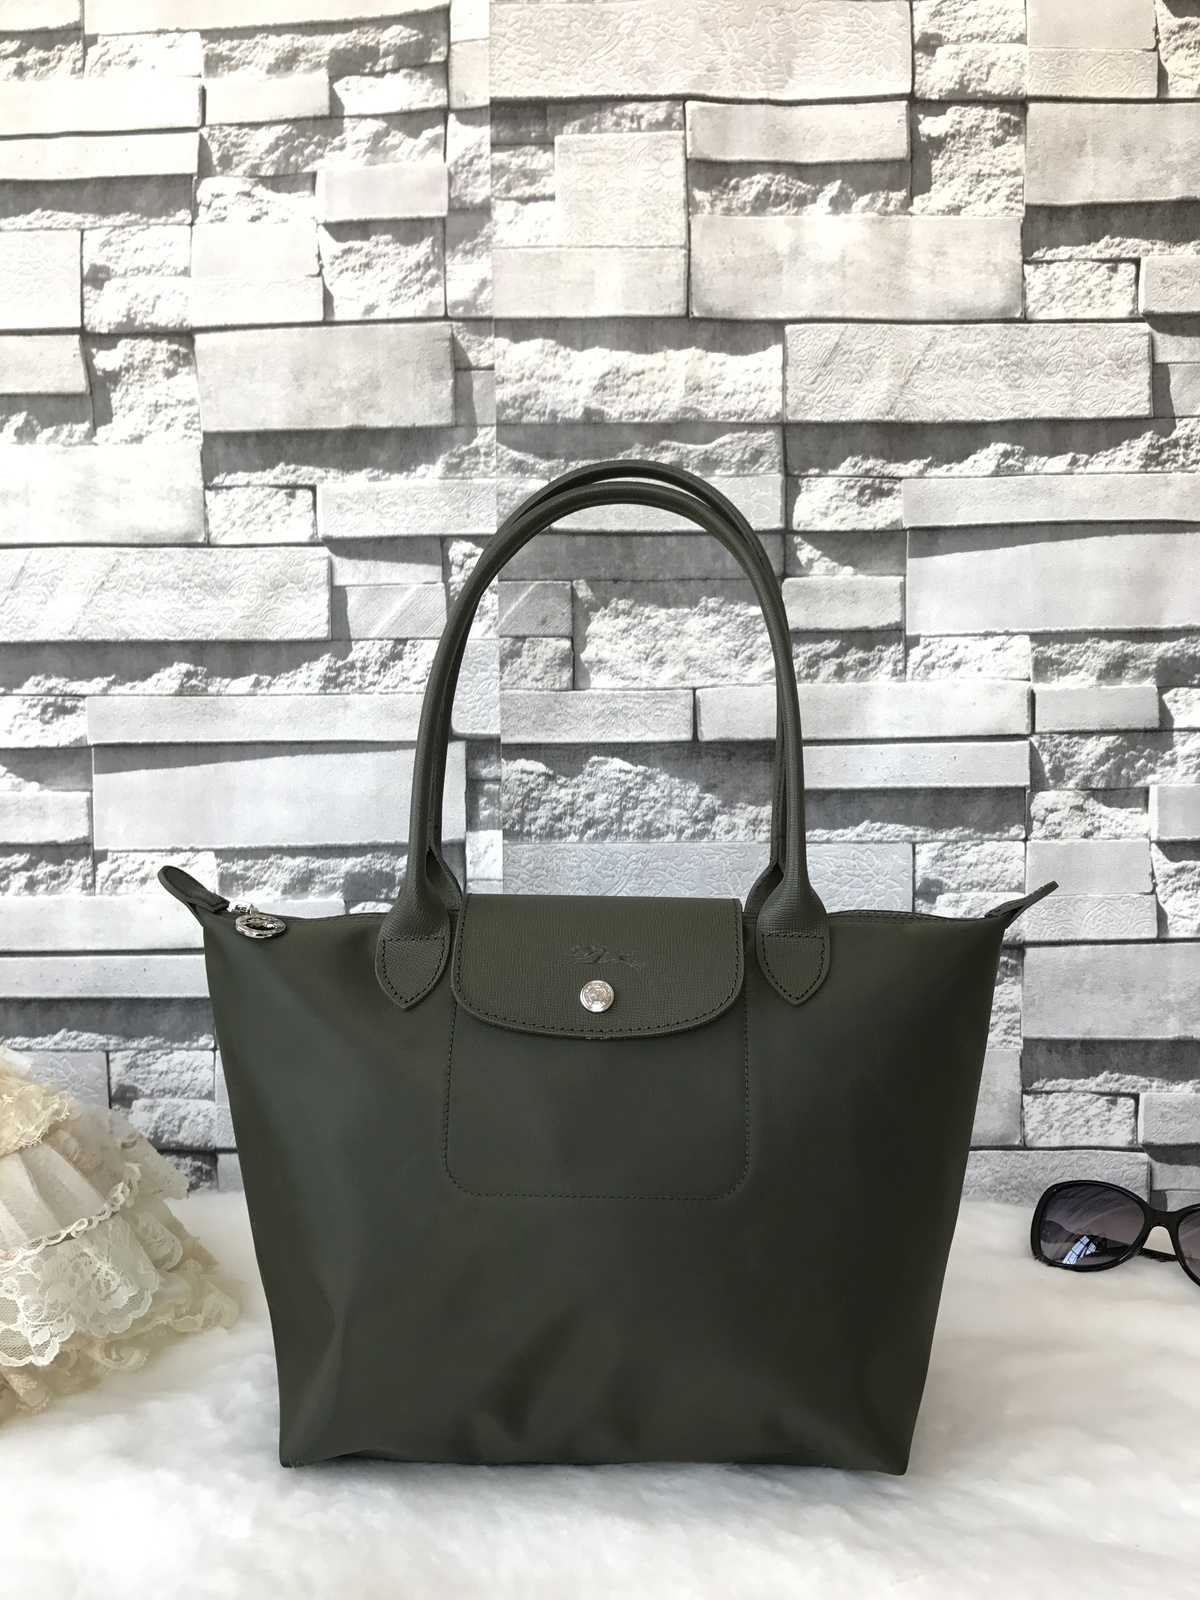 best service ee96a f483f Img 0563. Img 0563. Previous. Longchamp Le Pliage Neo Small Tote Bag Khaki  Green 2605578292 Authentic